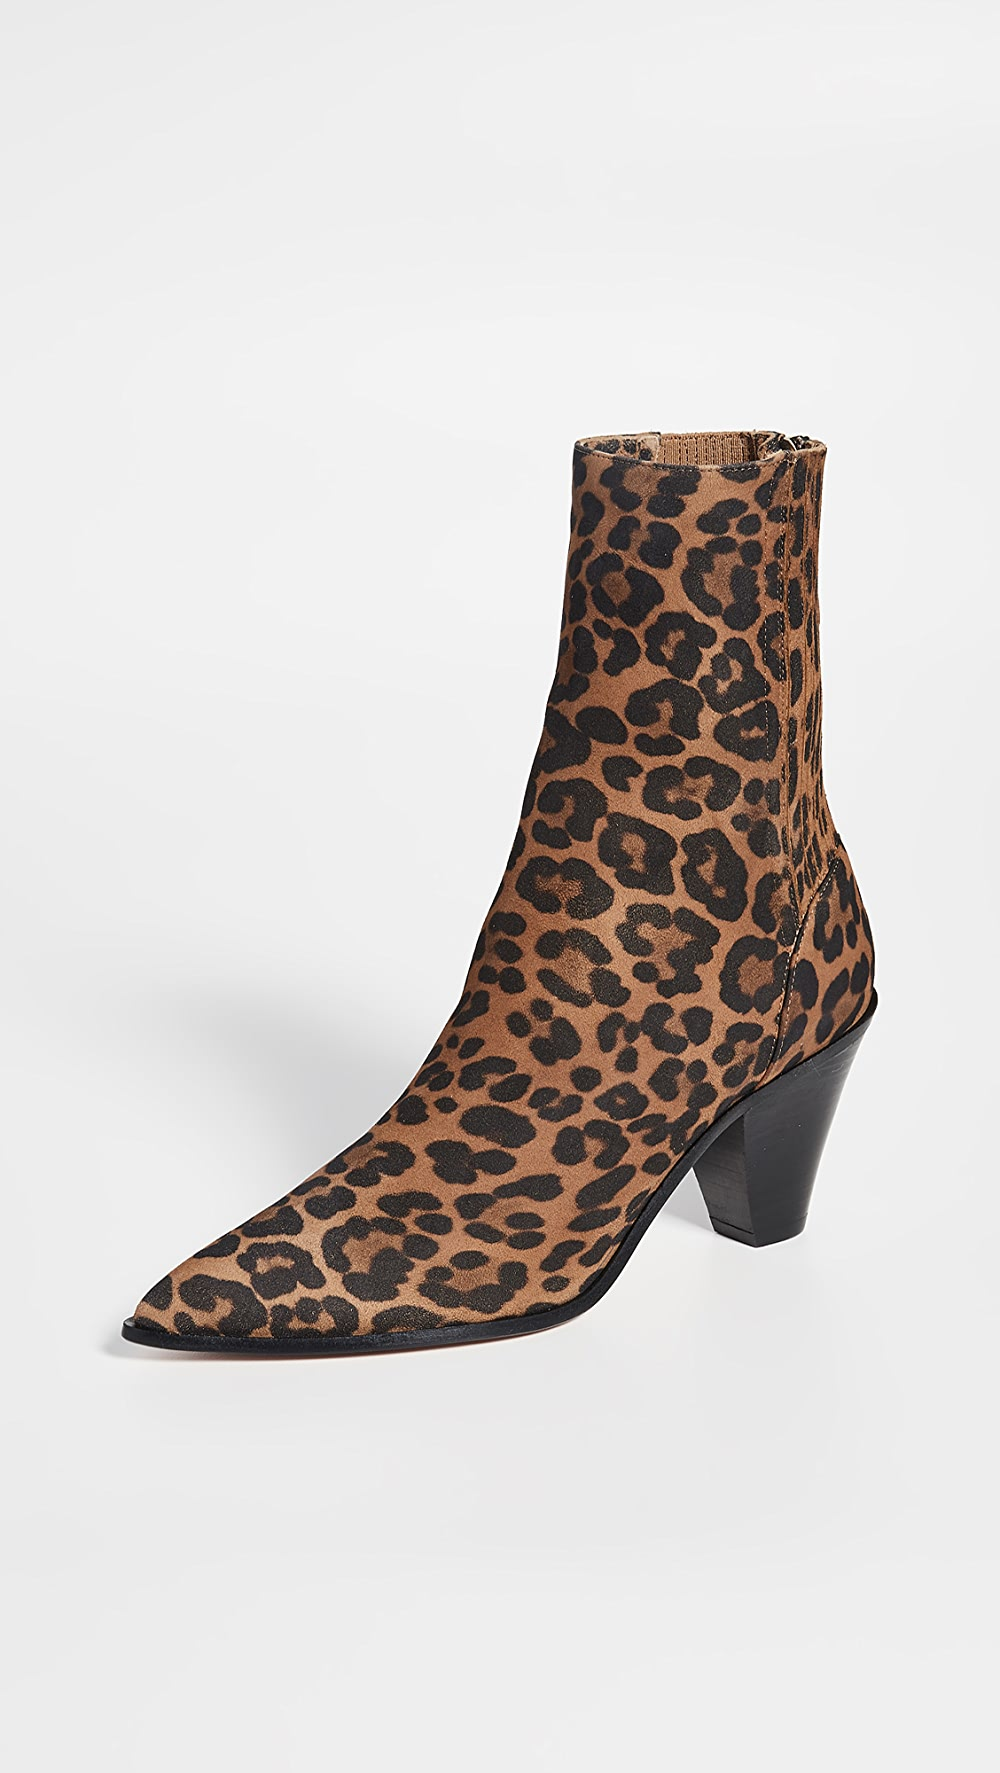 Amiable Aquazzura - Saint Honore' 70mm Booties Handsome Appearance